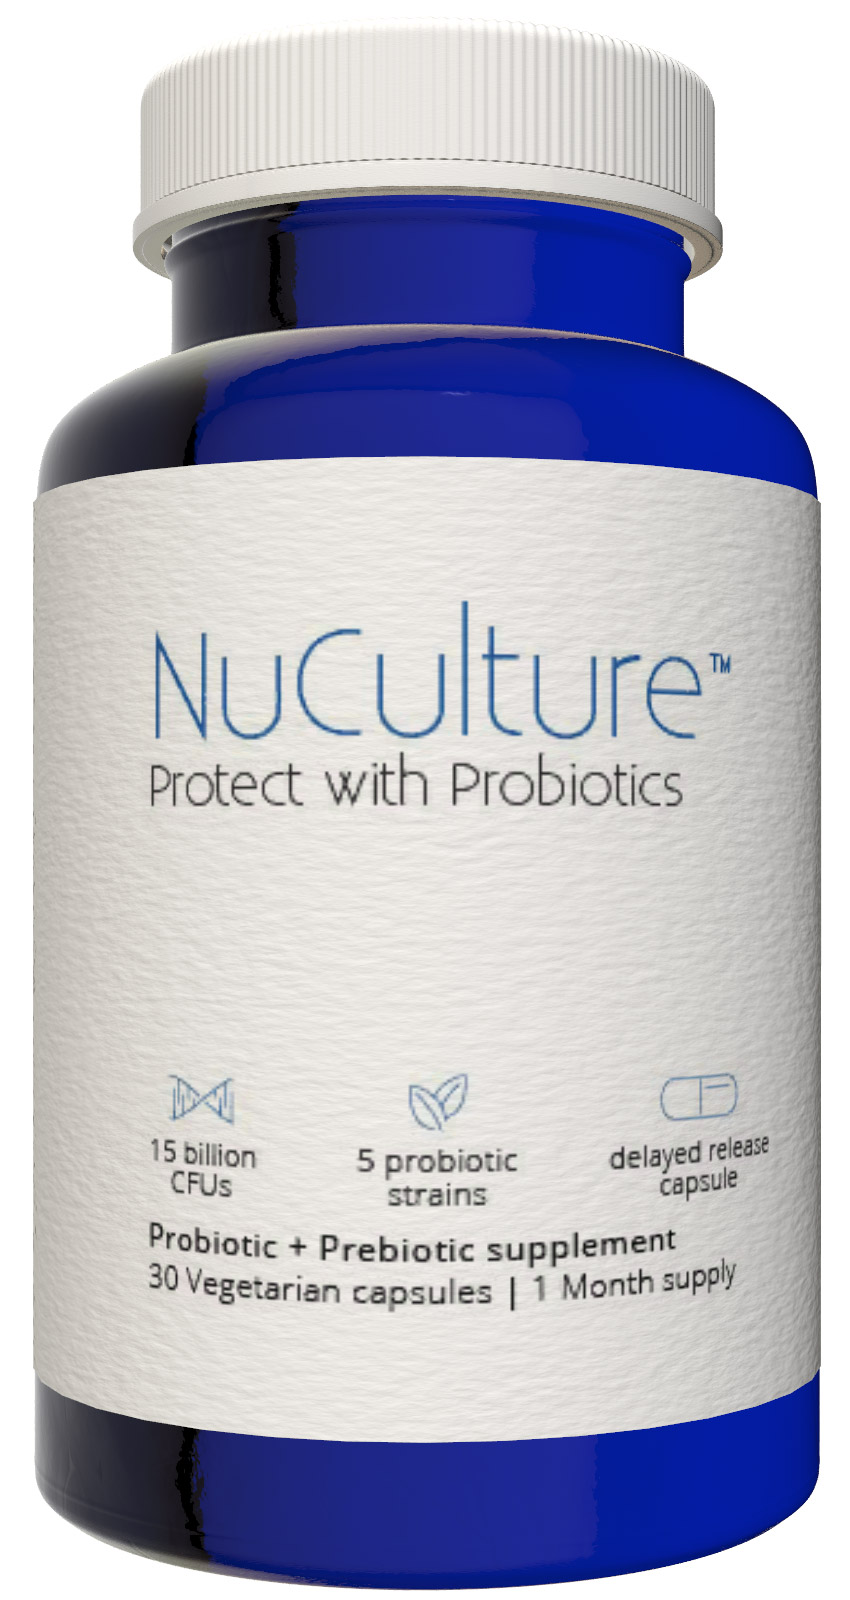 I'm Going to Try Boosting My Health Goals with #NuCulture Probiotics